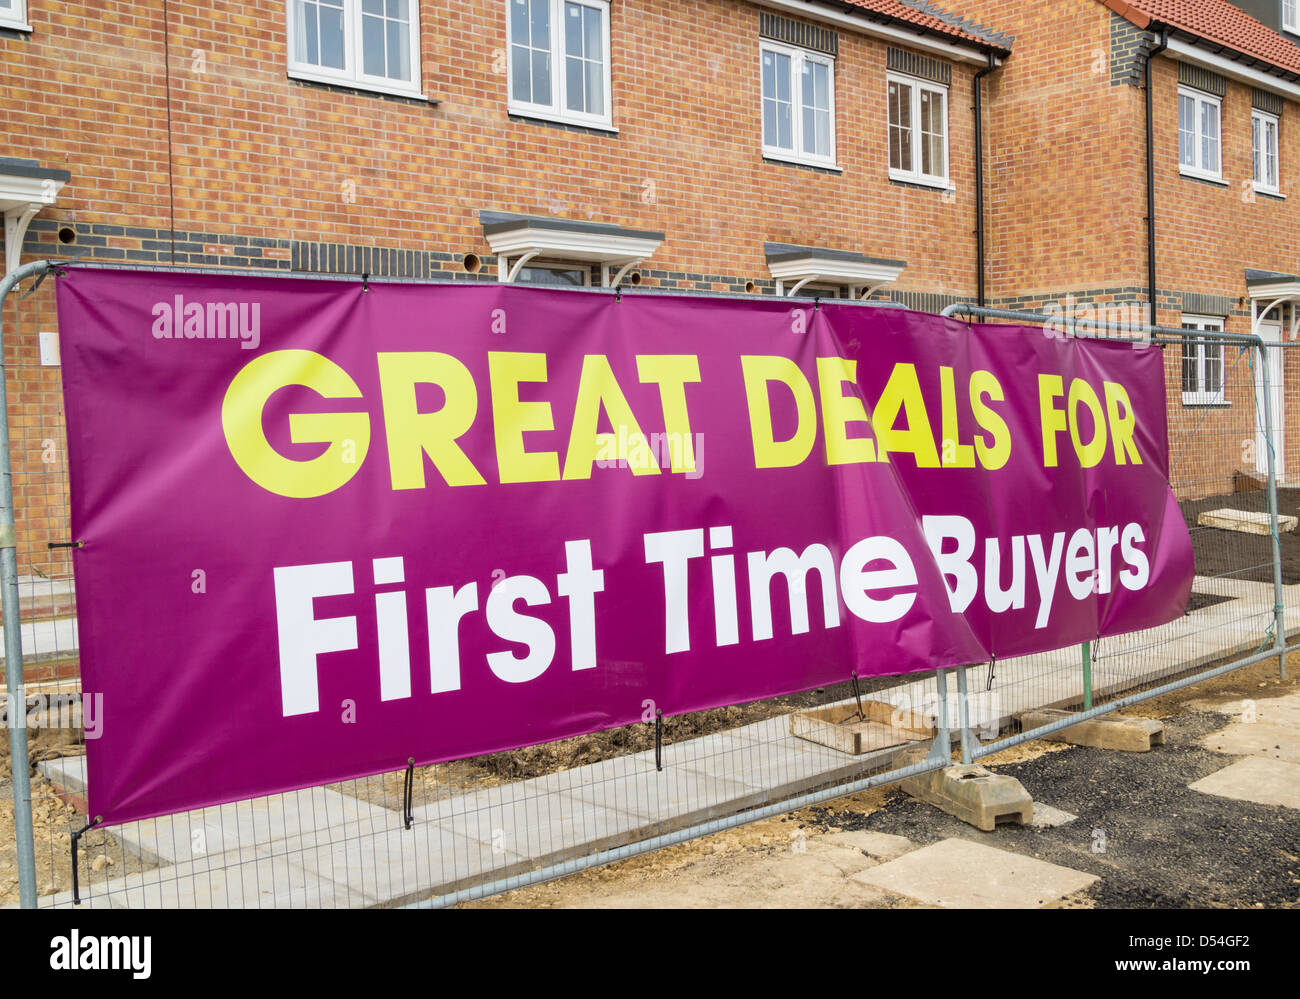 Great deal for first time buyers banner on new housing development in Billingham near Stockton on Tees, north east - Stock Image